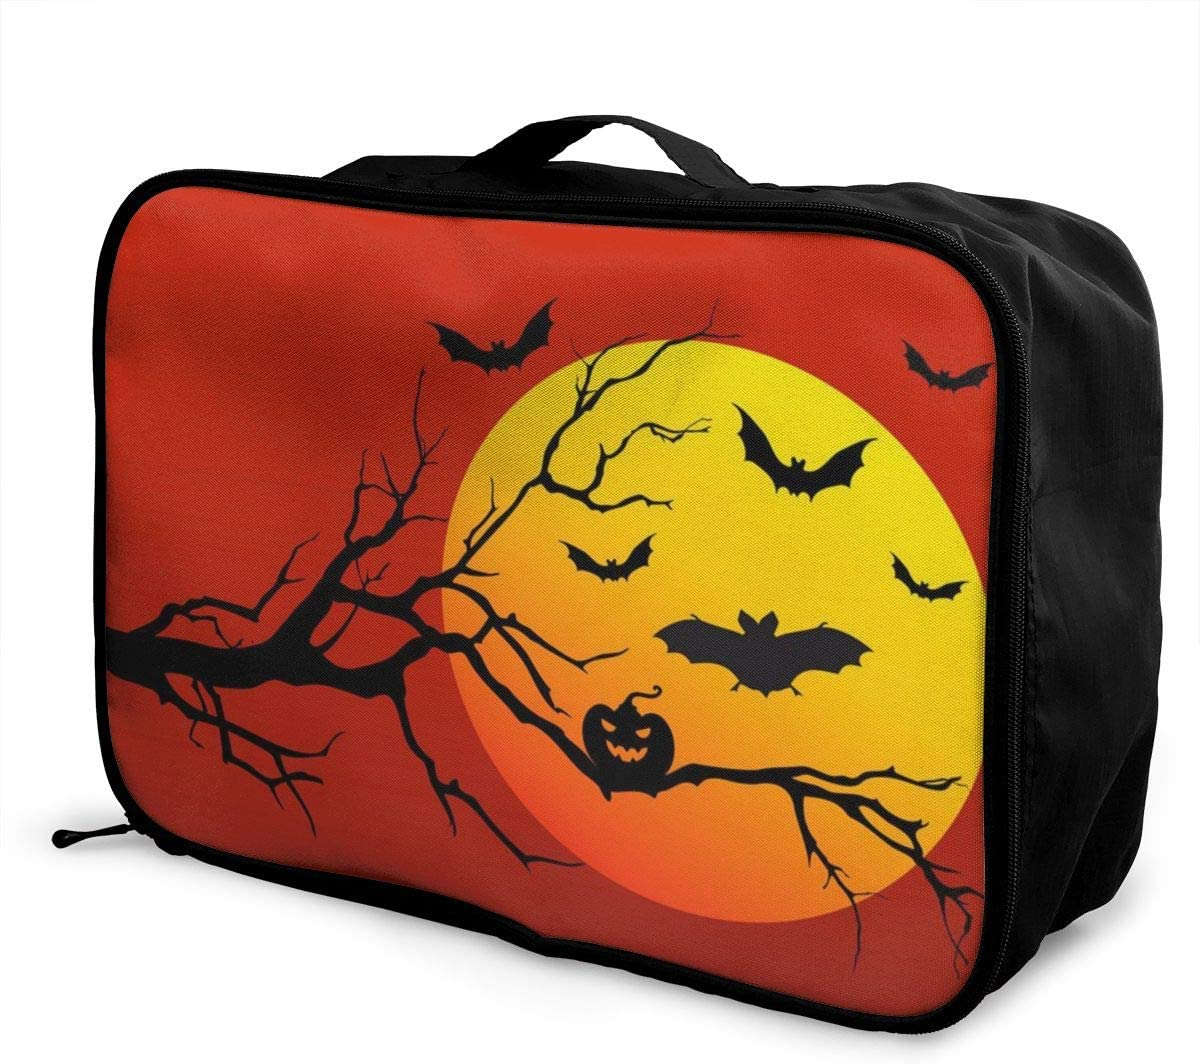 Yunshm Halloween Red Background Yellow Moon Customized Trolley Handbag Waterproof Unisex Large Capacity For Business Travel Storage